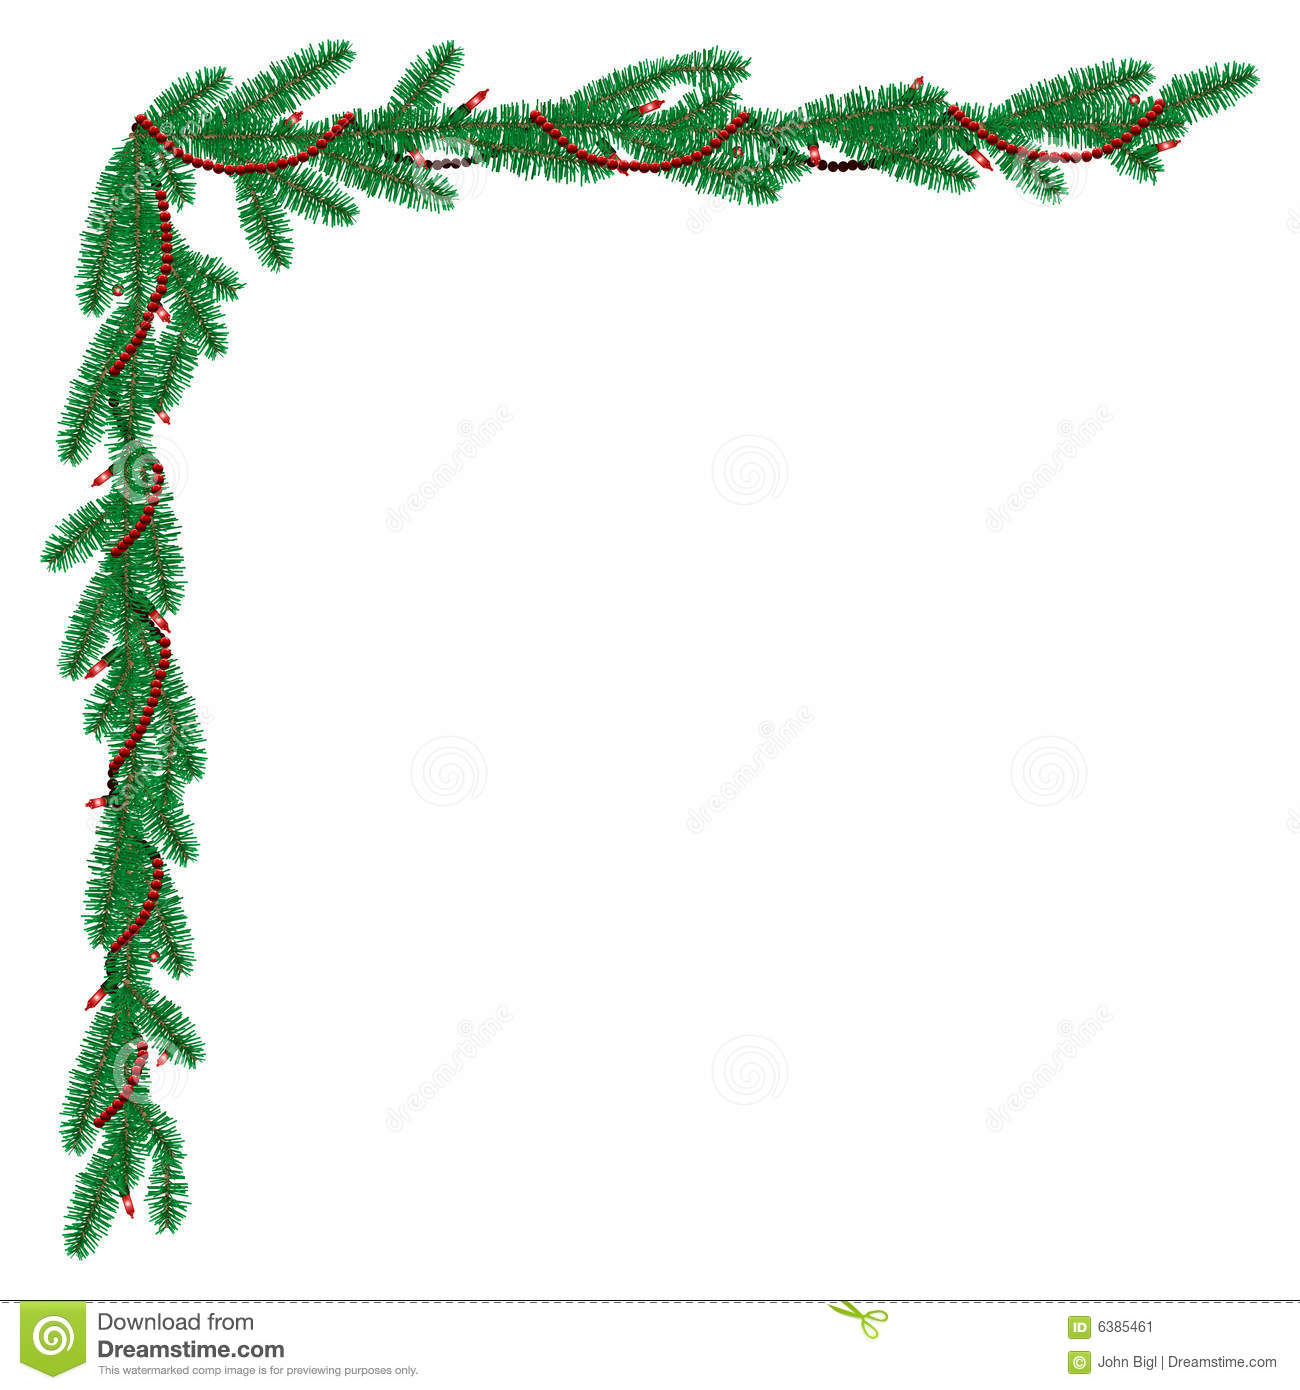 Pine Bough Cliparts, Stock Vector And Royalty Free Pine Bough Illustrations